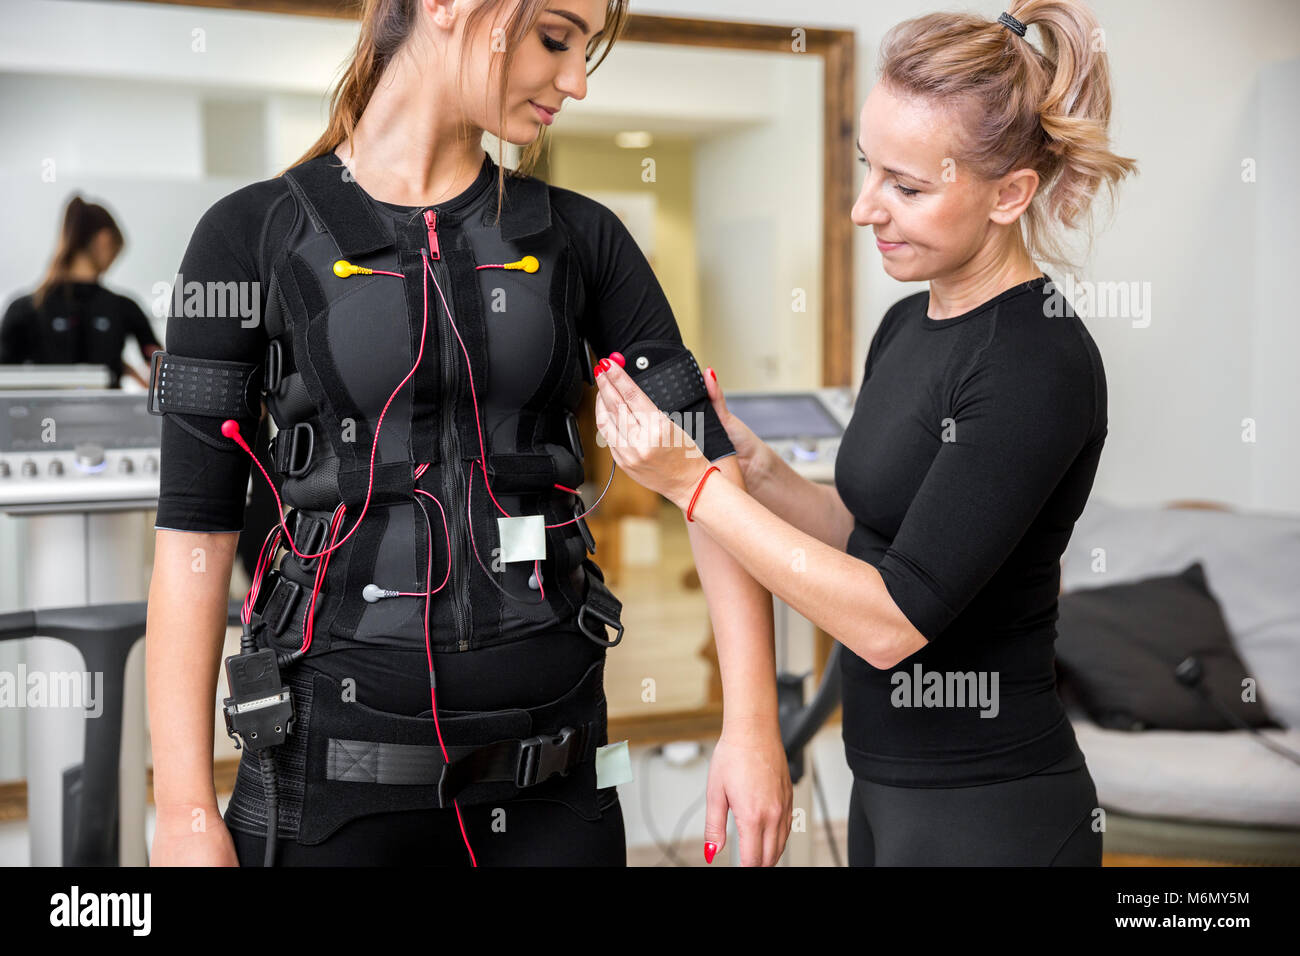 Portrait of personal trainer placing ems diodes on young woman - Stock Image